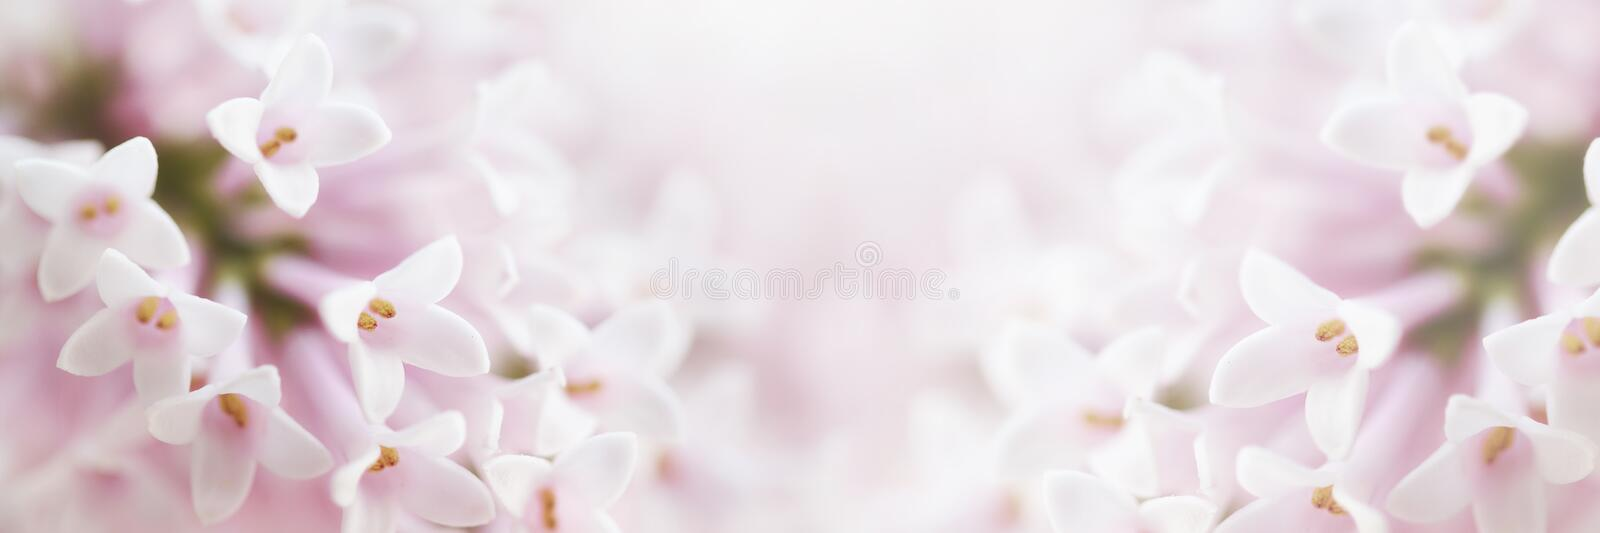 Beautiful tender gentle delicate flower background with small pi royalty free stock photography